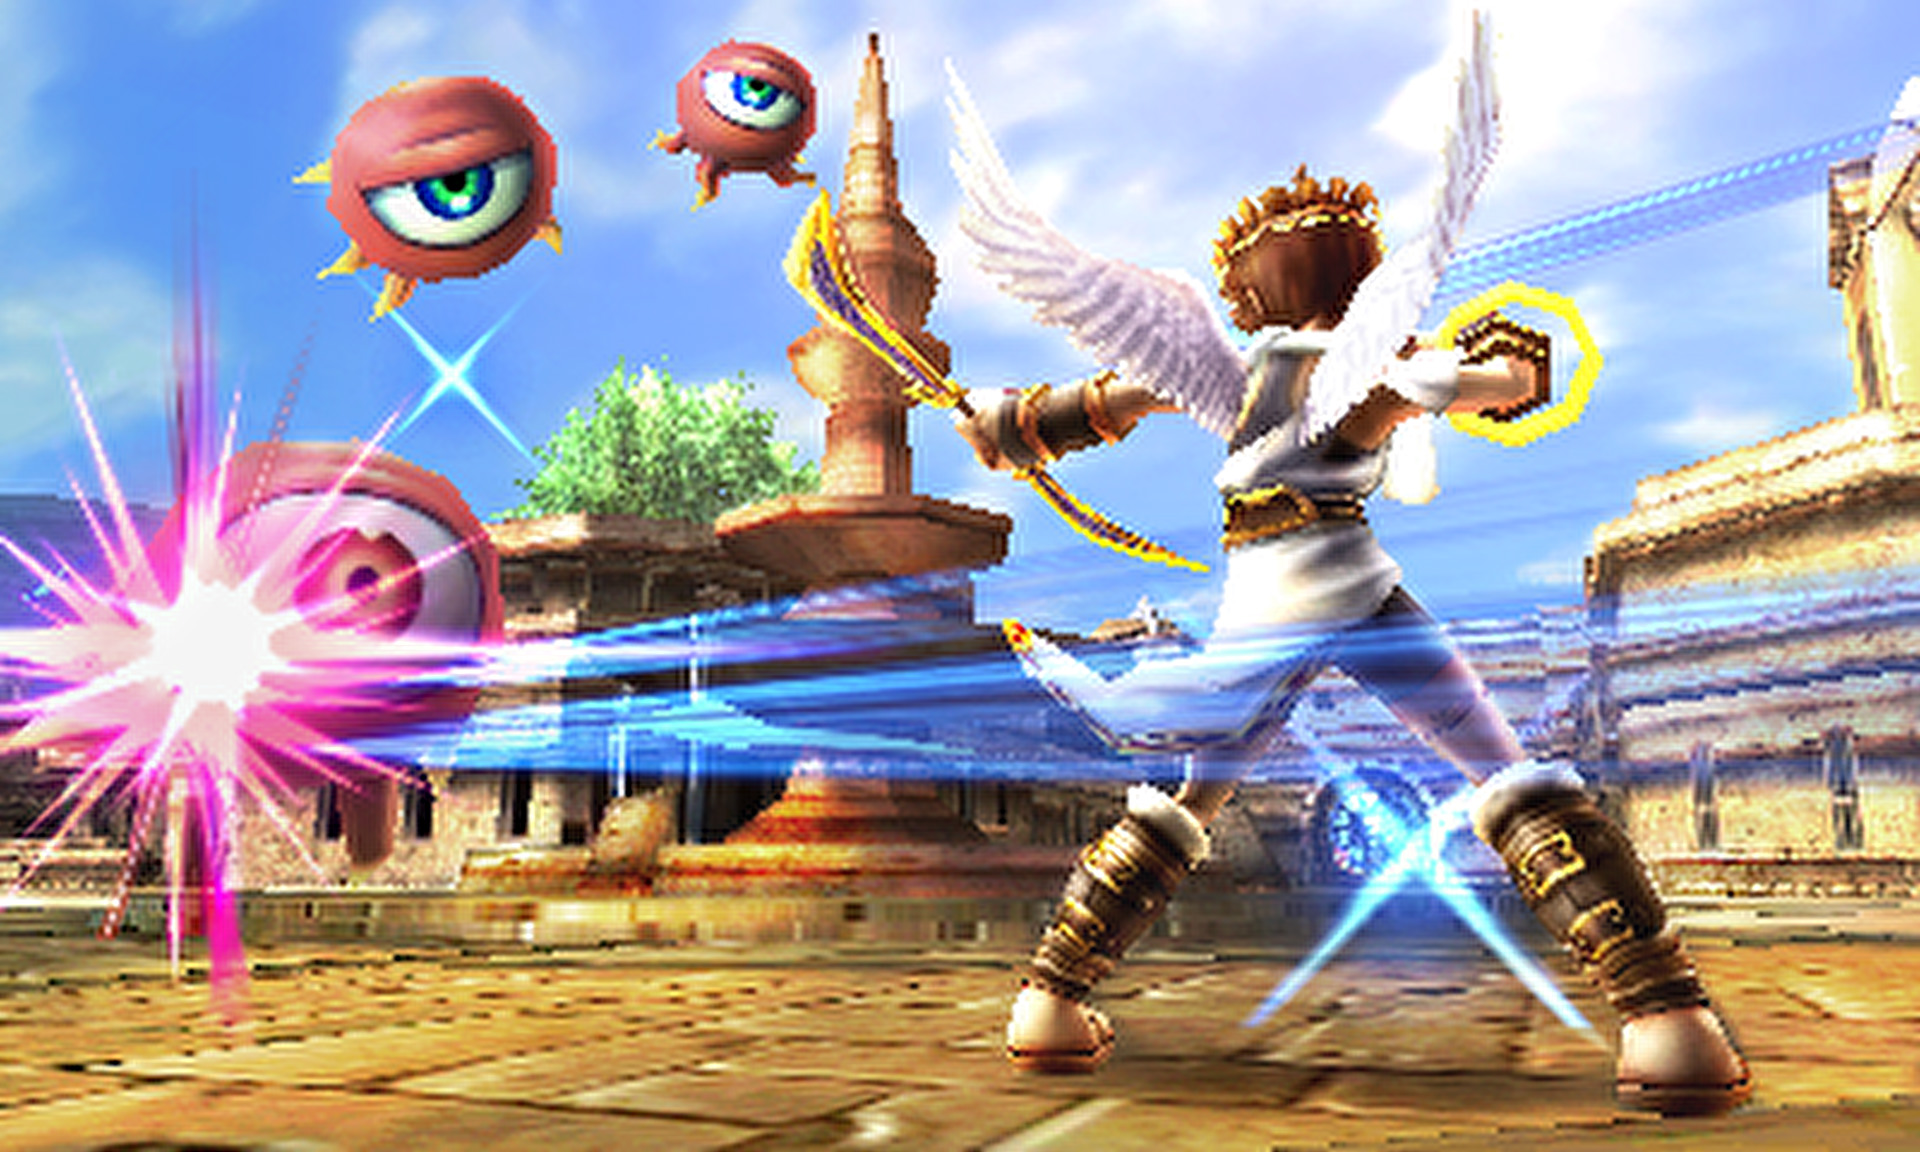 Remember the amazing Kid Icarus: Uprising with some My Nintendo rewards